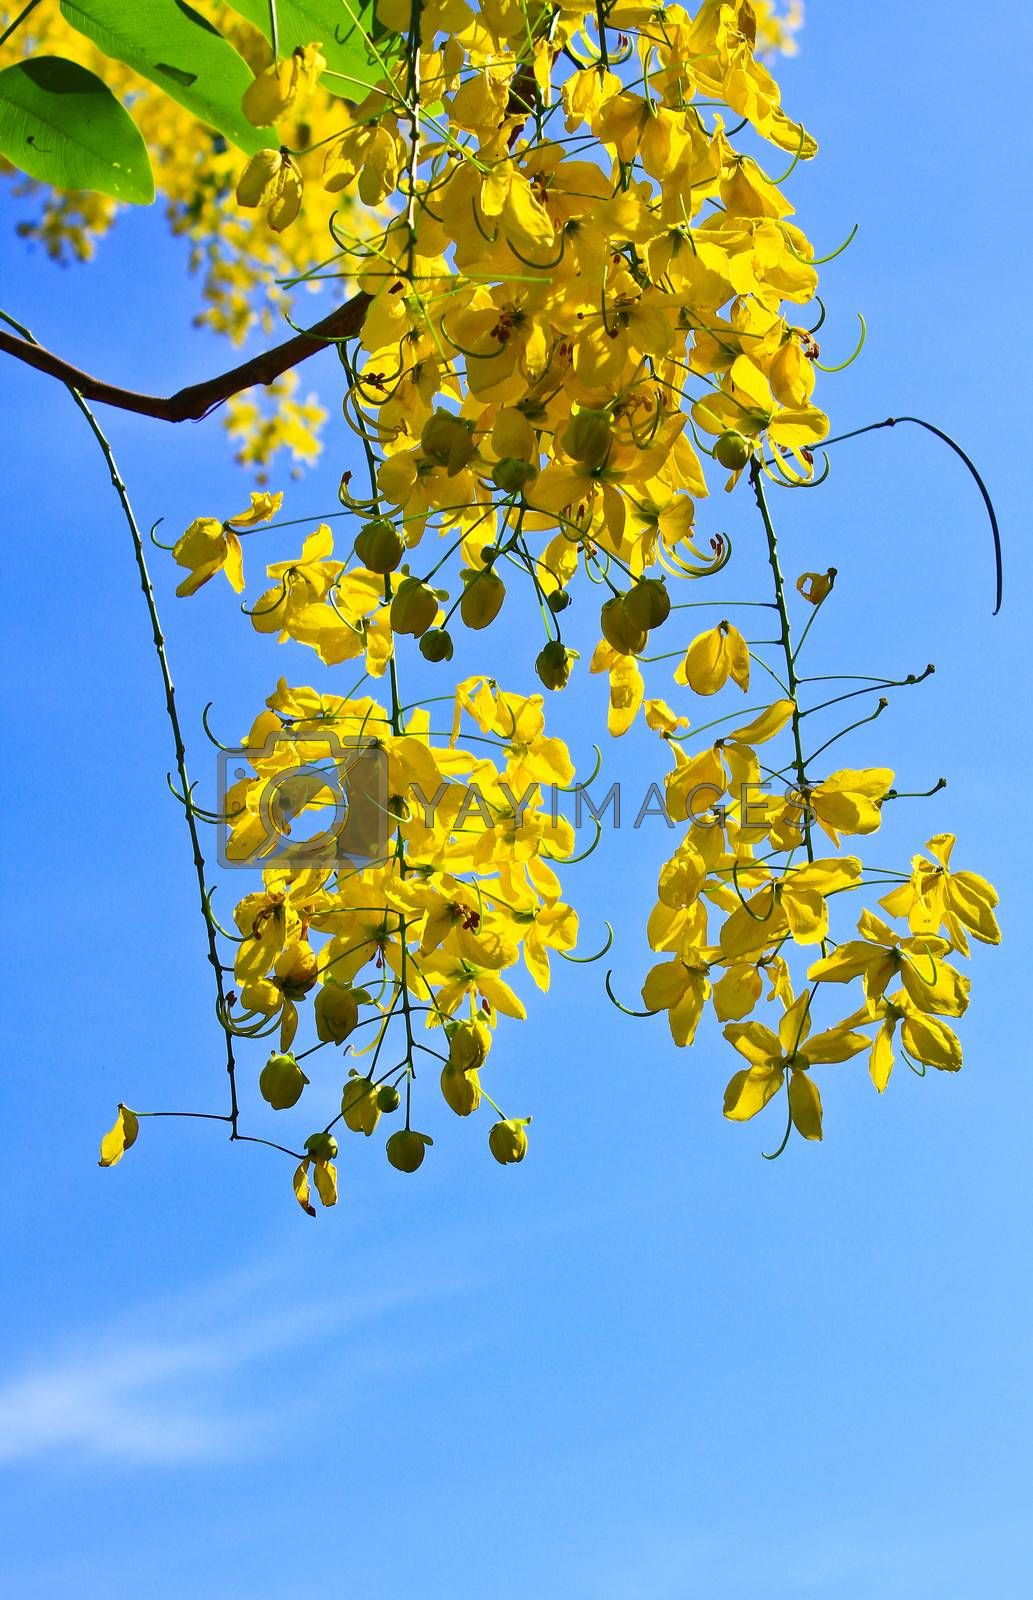 Royalty free image of Cassia Fistula in clear blue sky by forest71